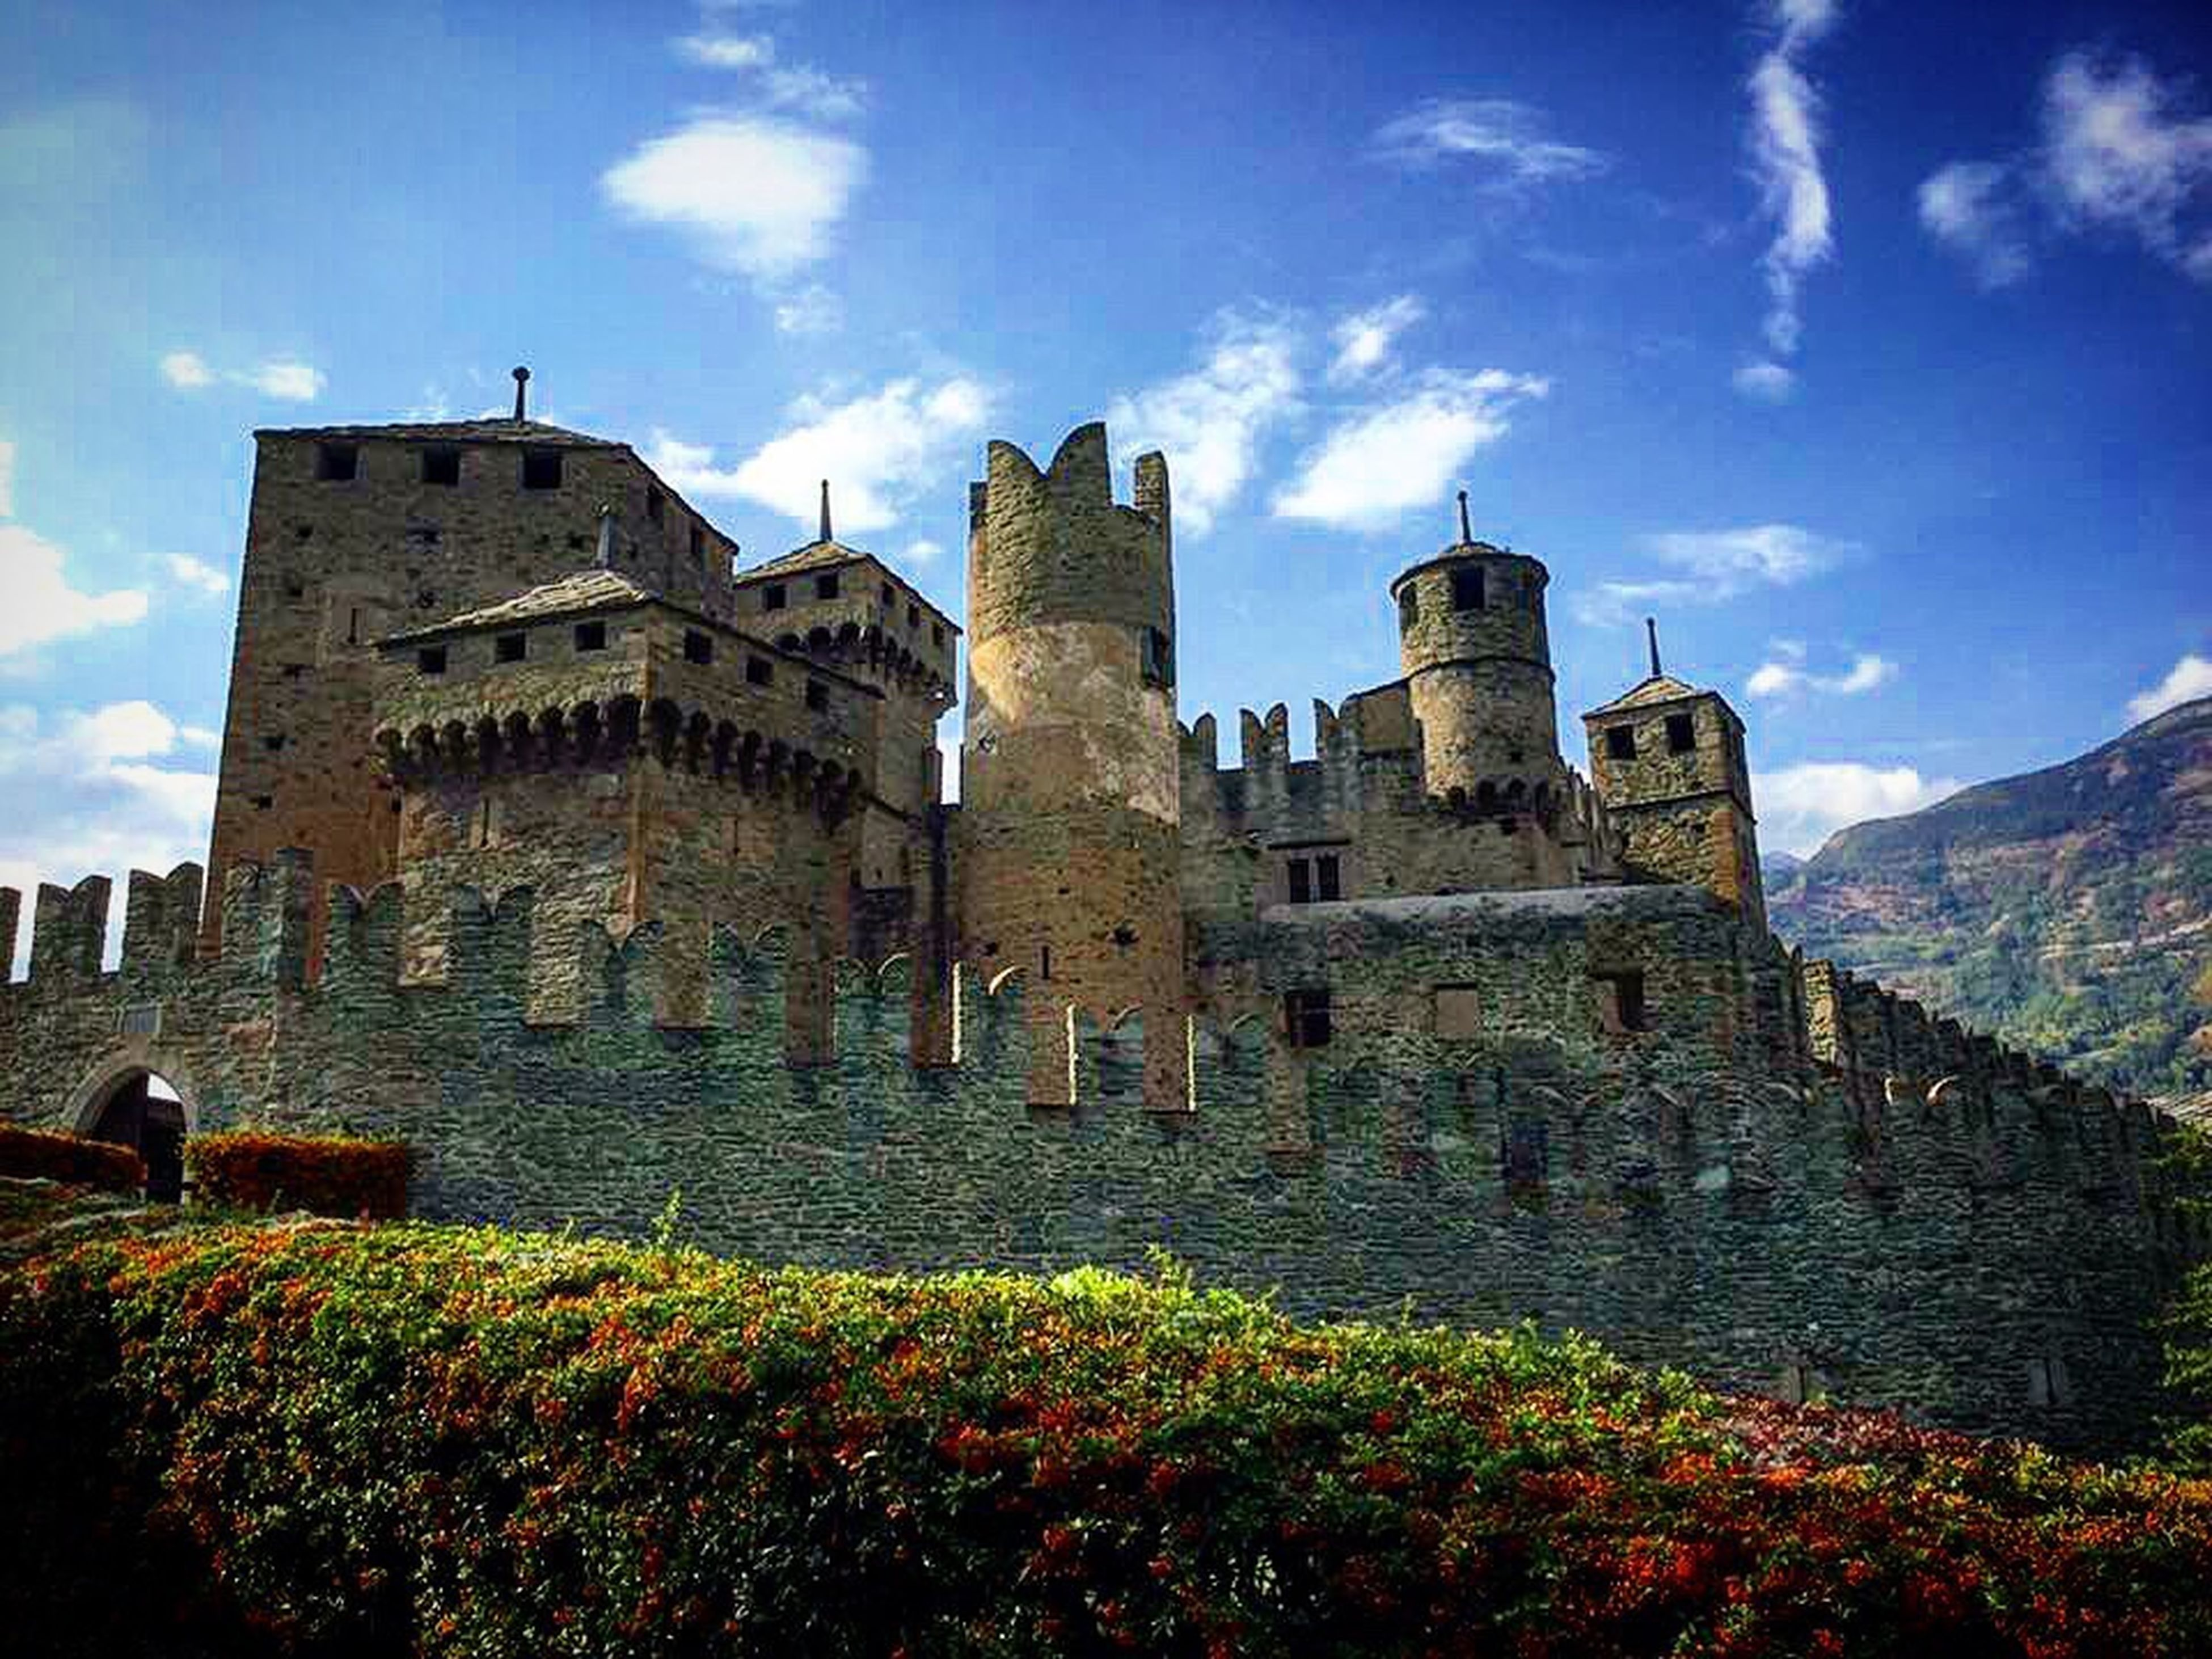 architecture, built structure, flower, building exterior, plant, castle, tower, history, sky, the past, travel destinations, growth, medieval, cloud - sky, surrounding wall, fragility, lookout tower, old ruin, fortified wall, tourism, in bloom, famous place, fort, culture, springtime, fortress, outdoors, freshness, blossom, day, blue, garden, tall - high, nature, flowerbed